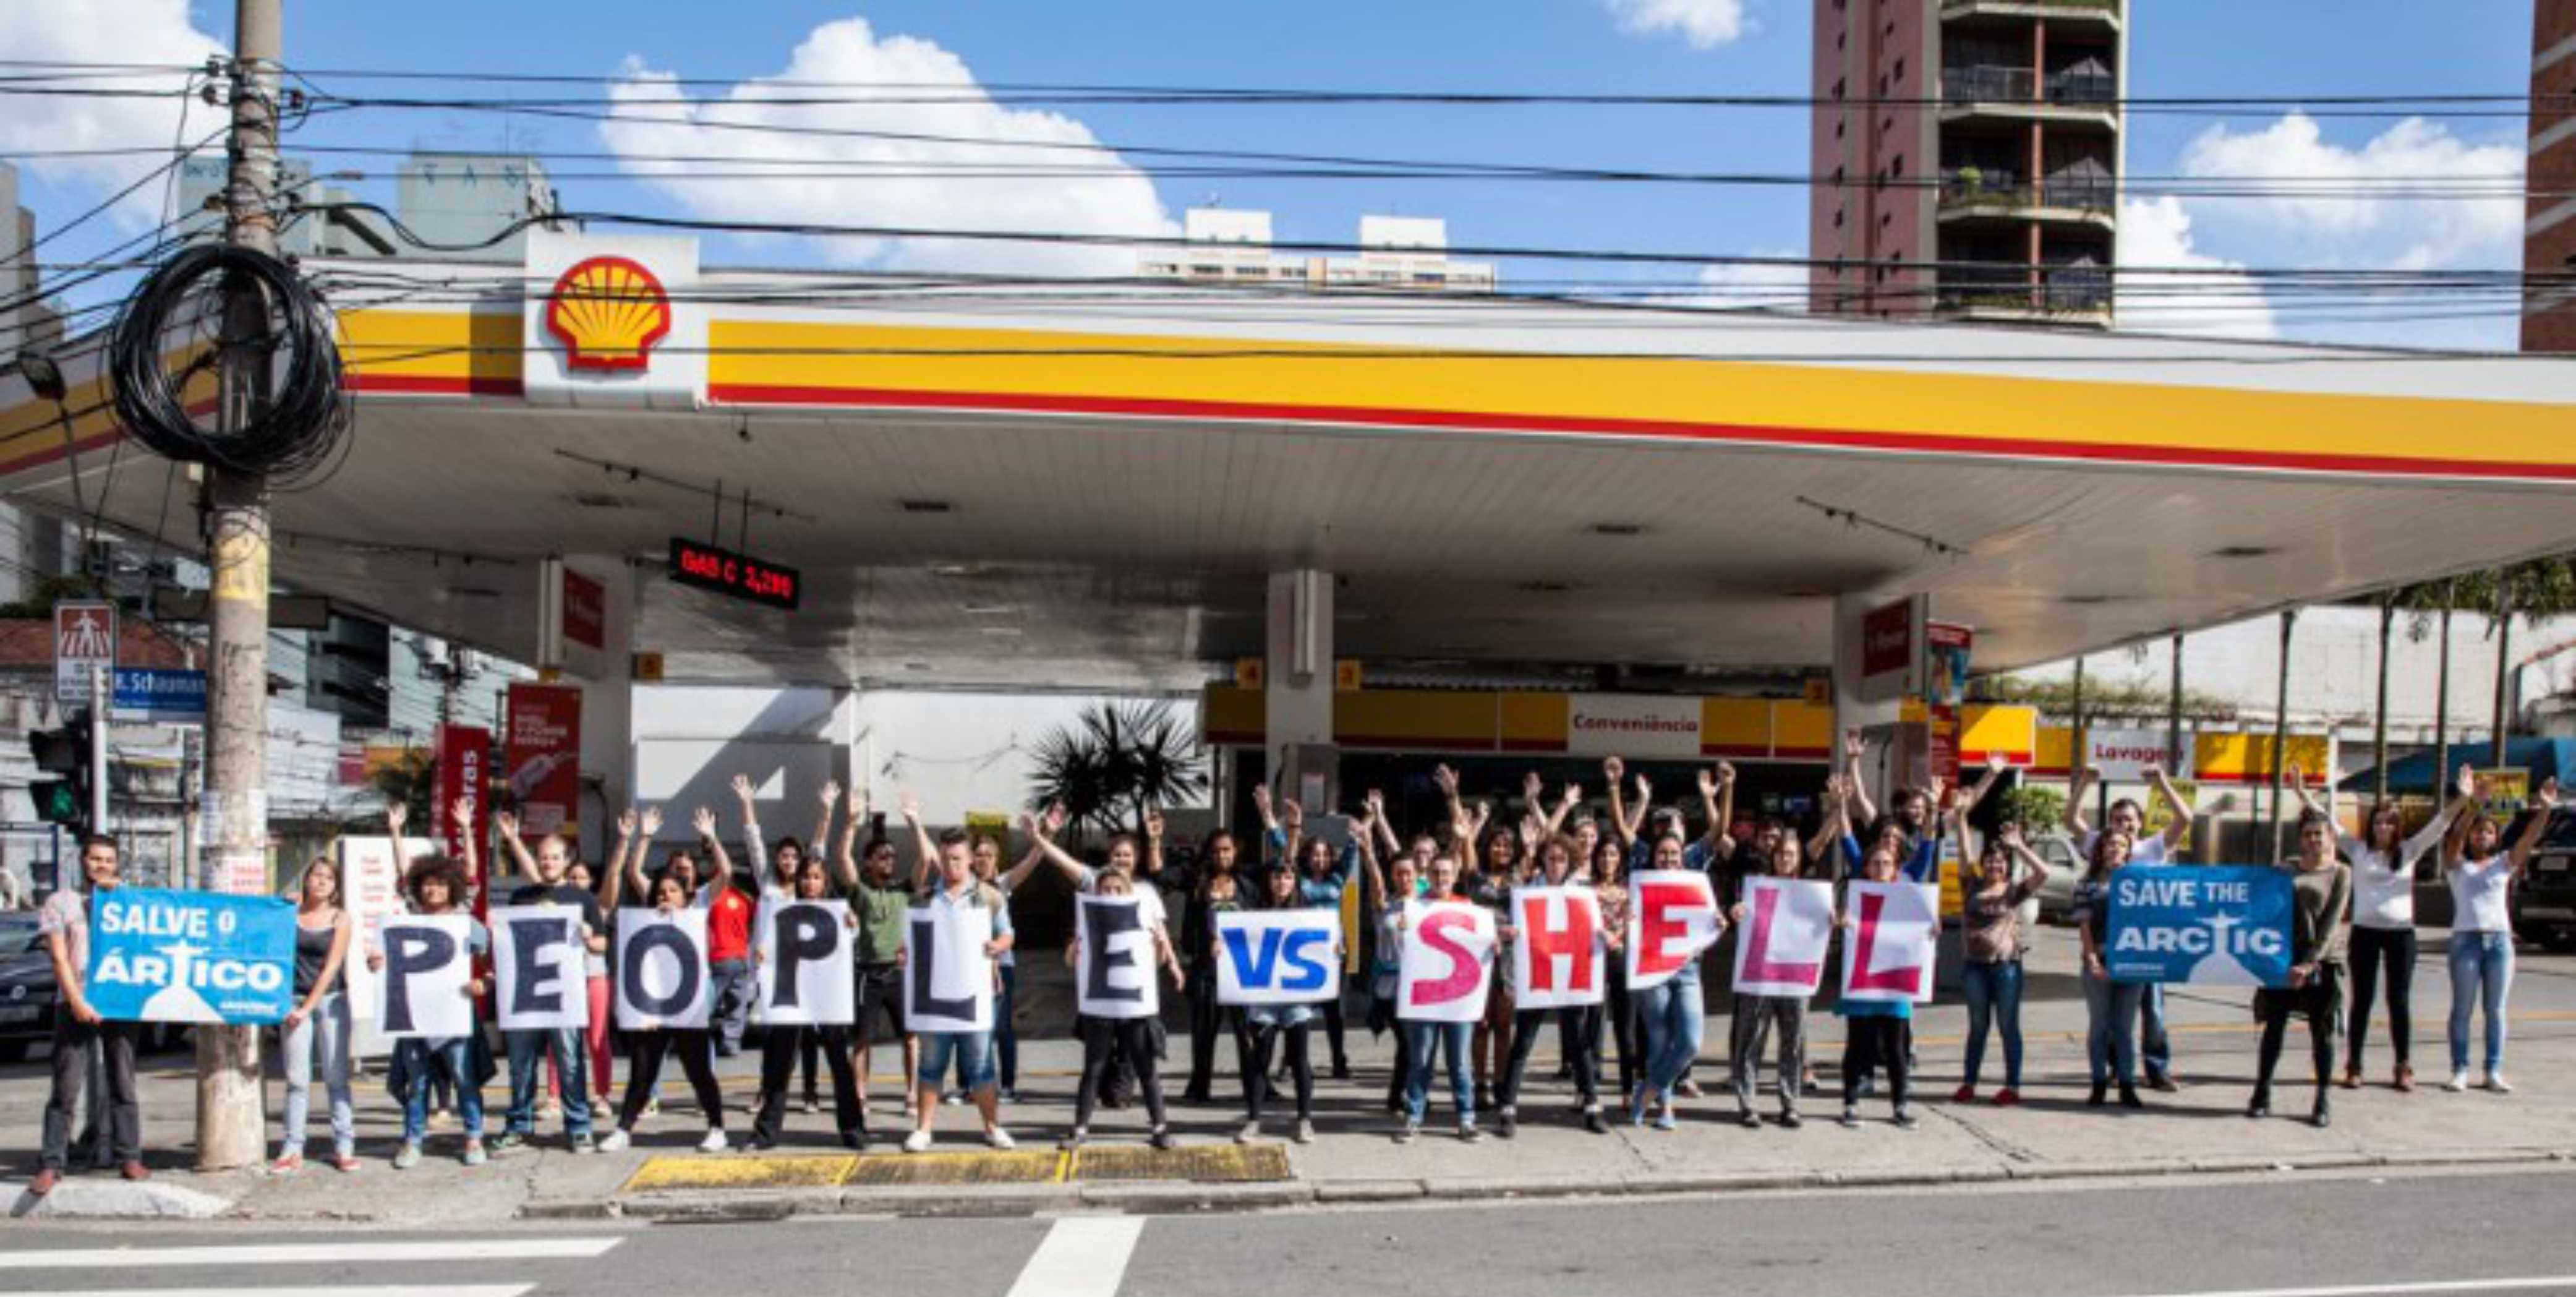 PEOPLE VS SHELL